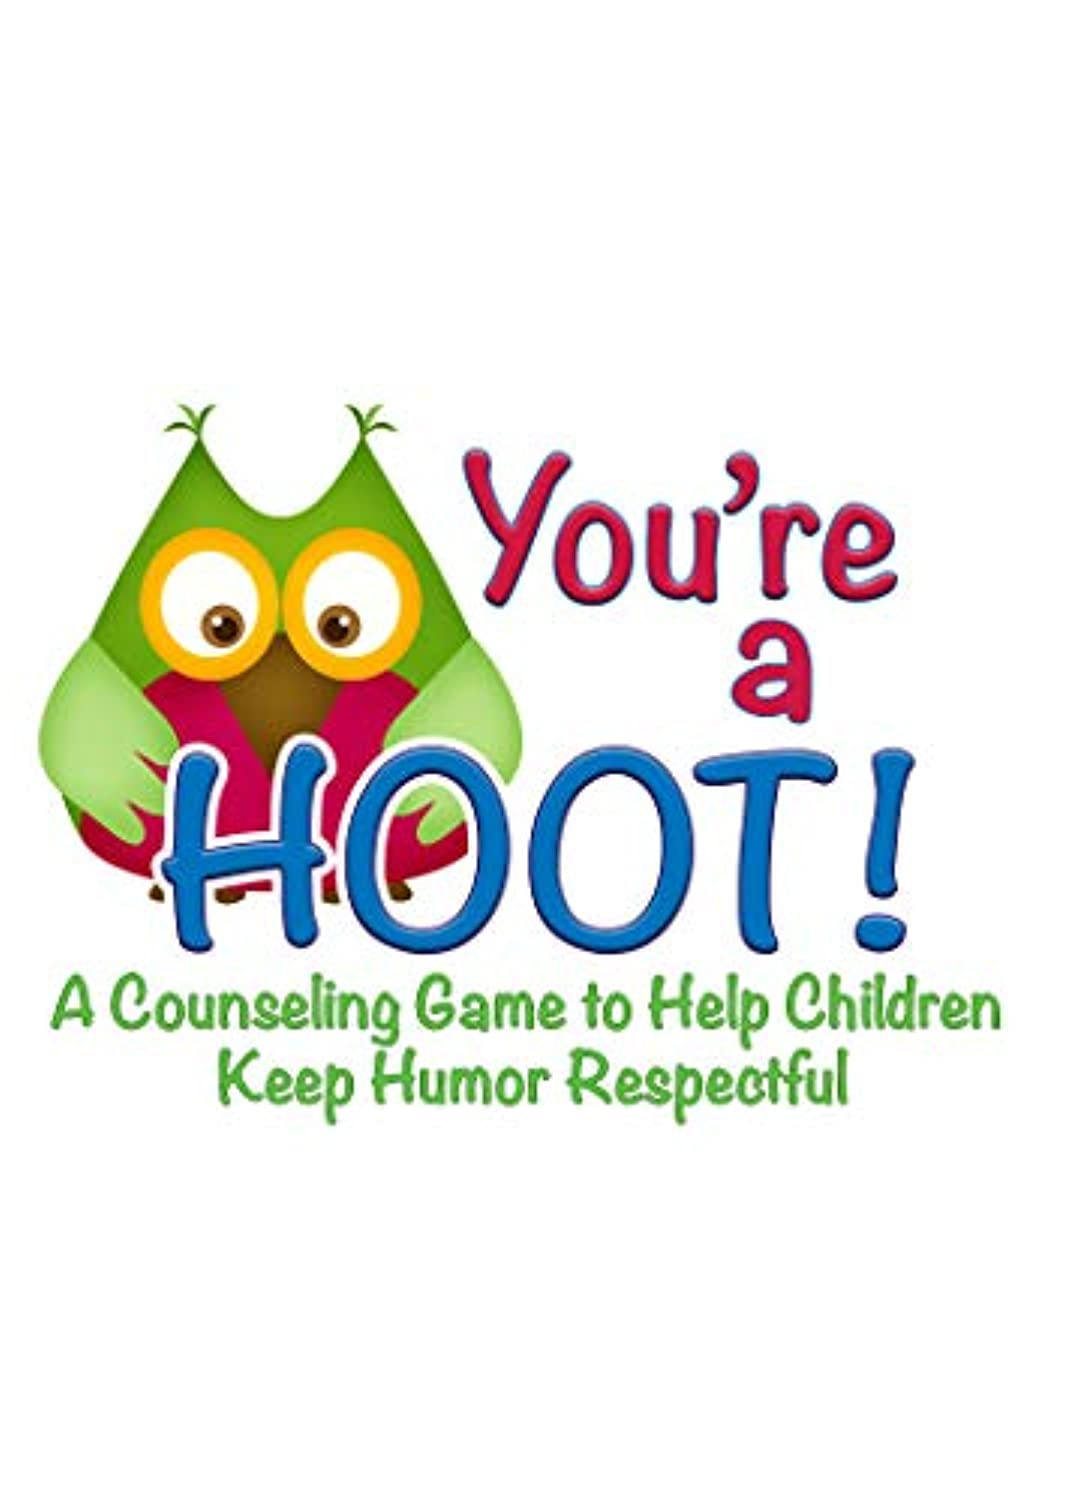 YourYou've a Hoot Counseling Game to Help Children Keep Humor Respectful